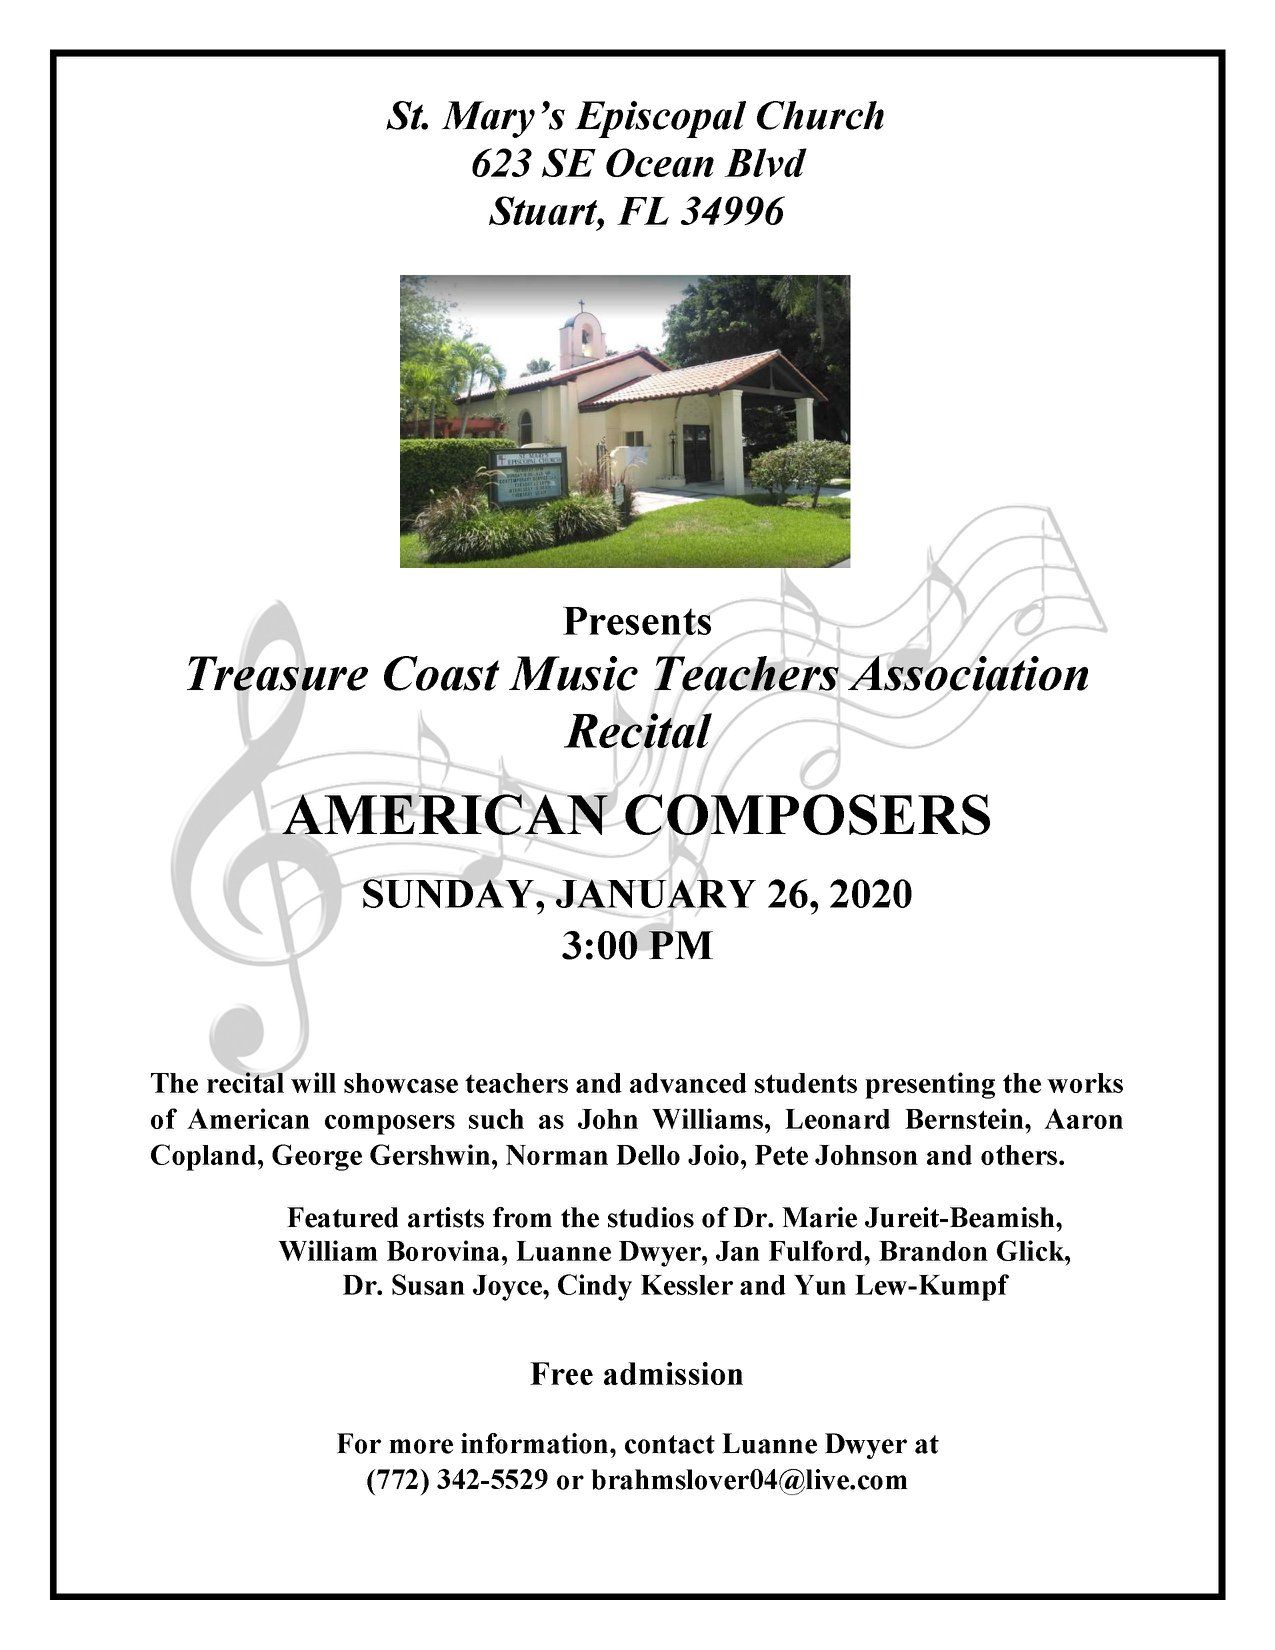 Treasure Coast Teachers Association Music Recital